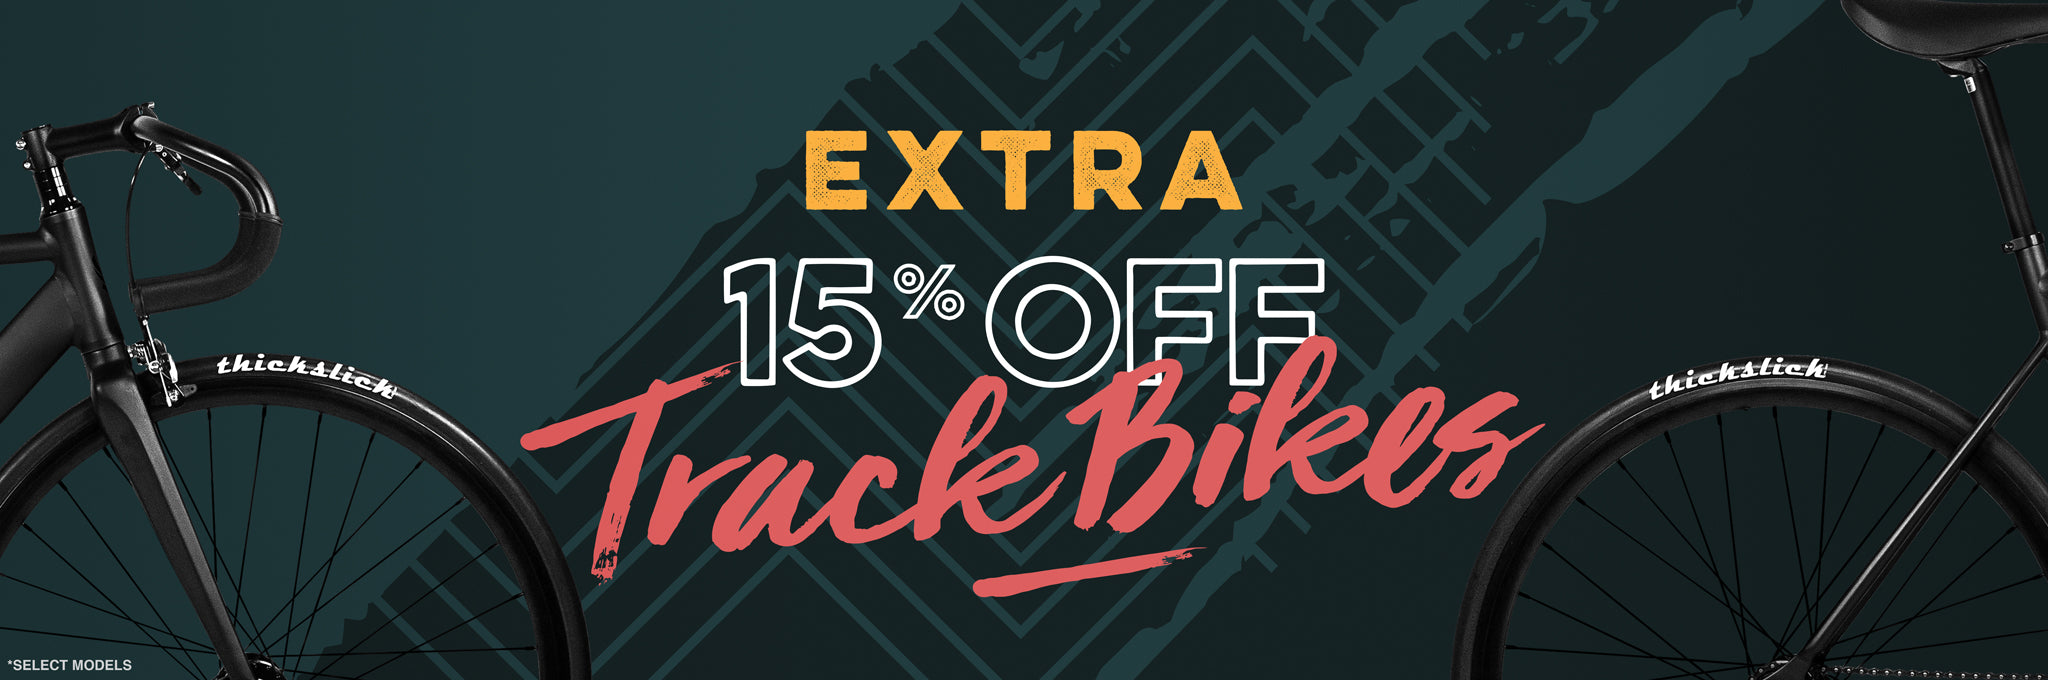 Huge Track Bike Deals